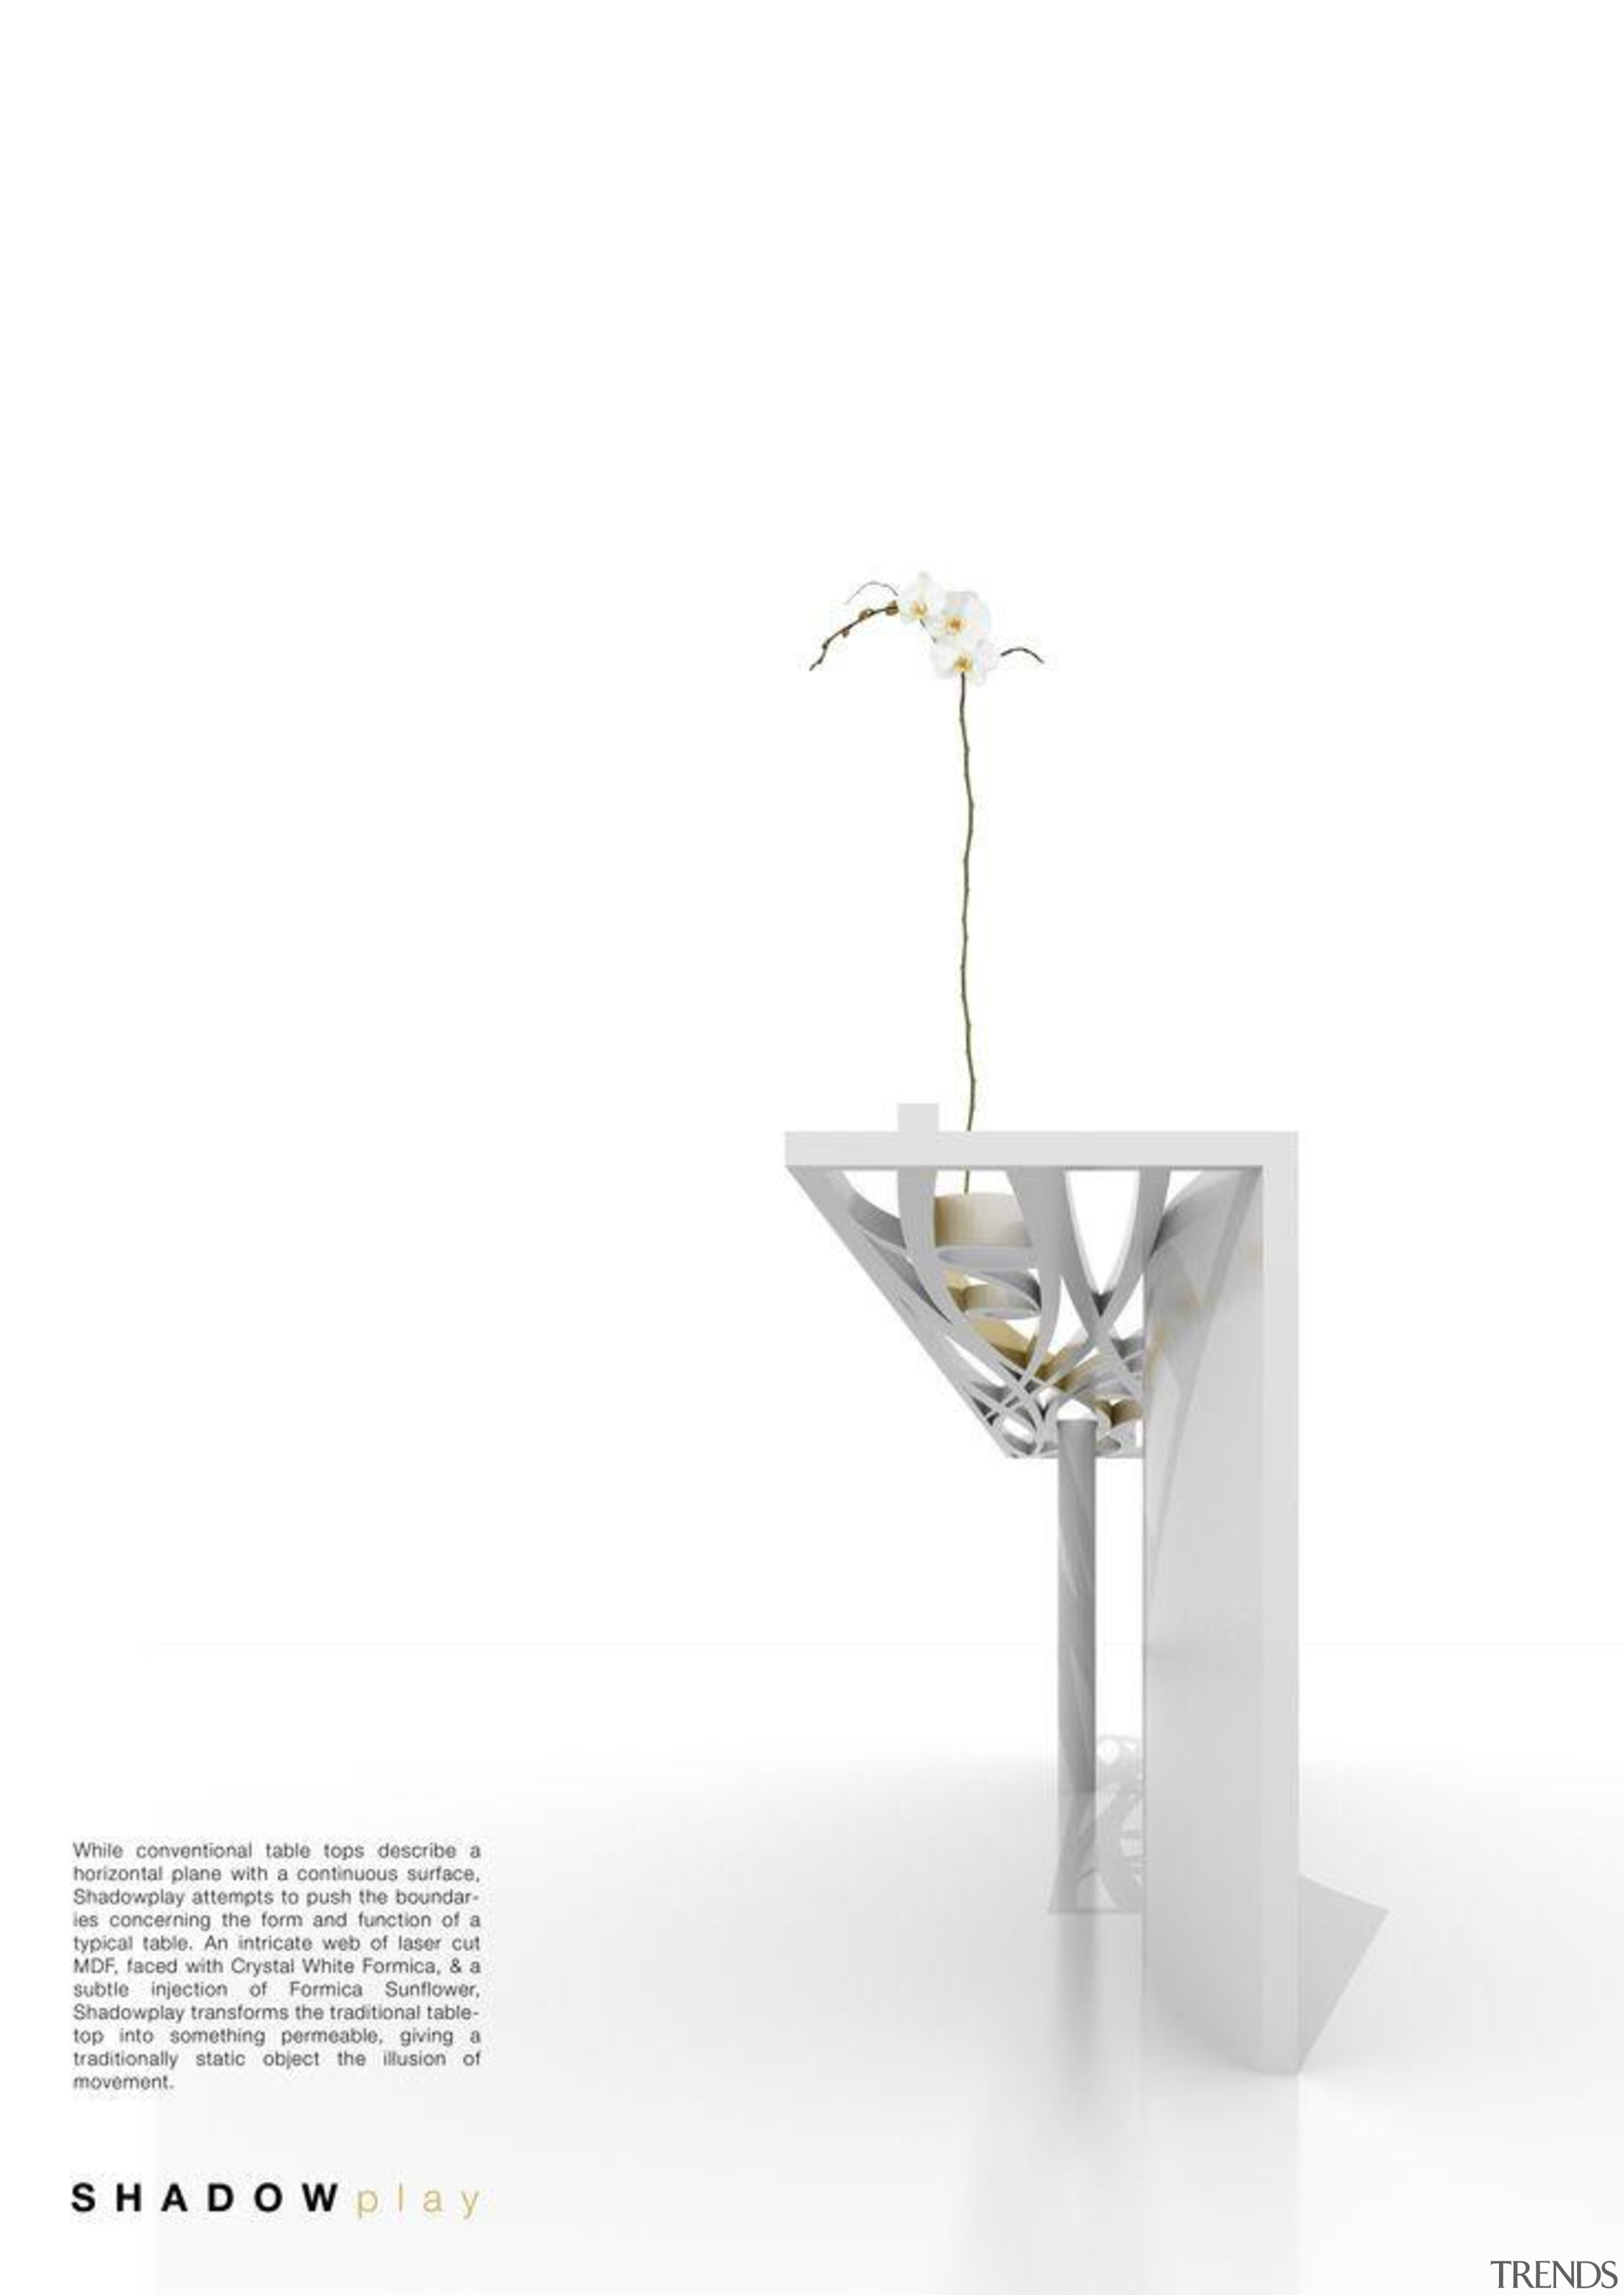 by Jin Jeong - Shadow Play - glass glass, product, product design, table, tap, white